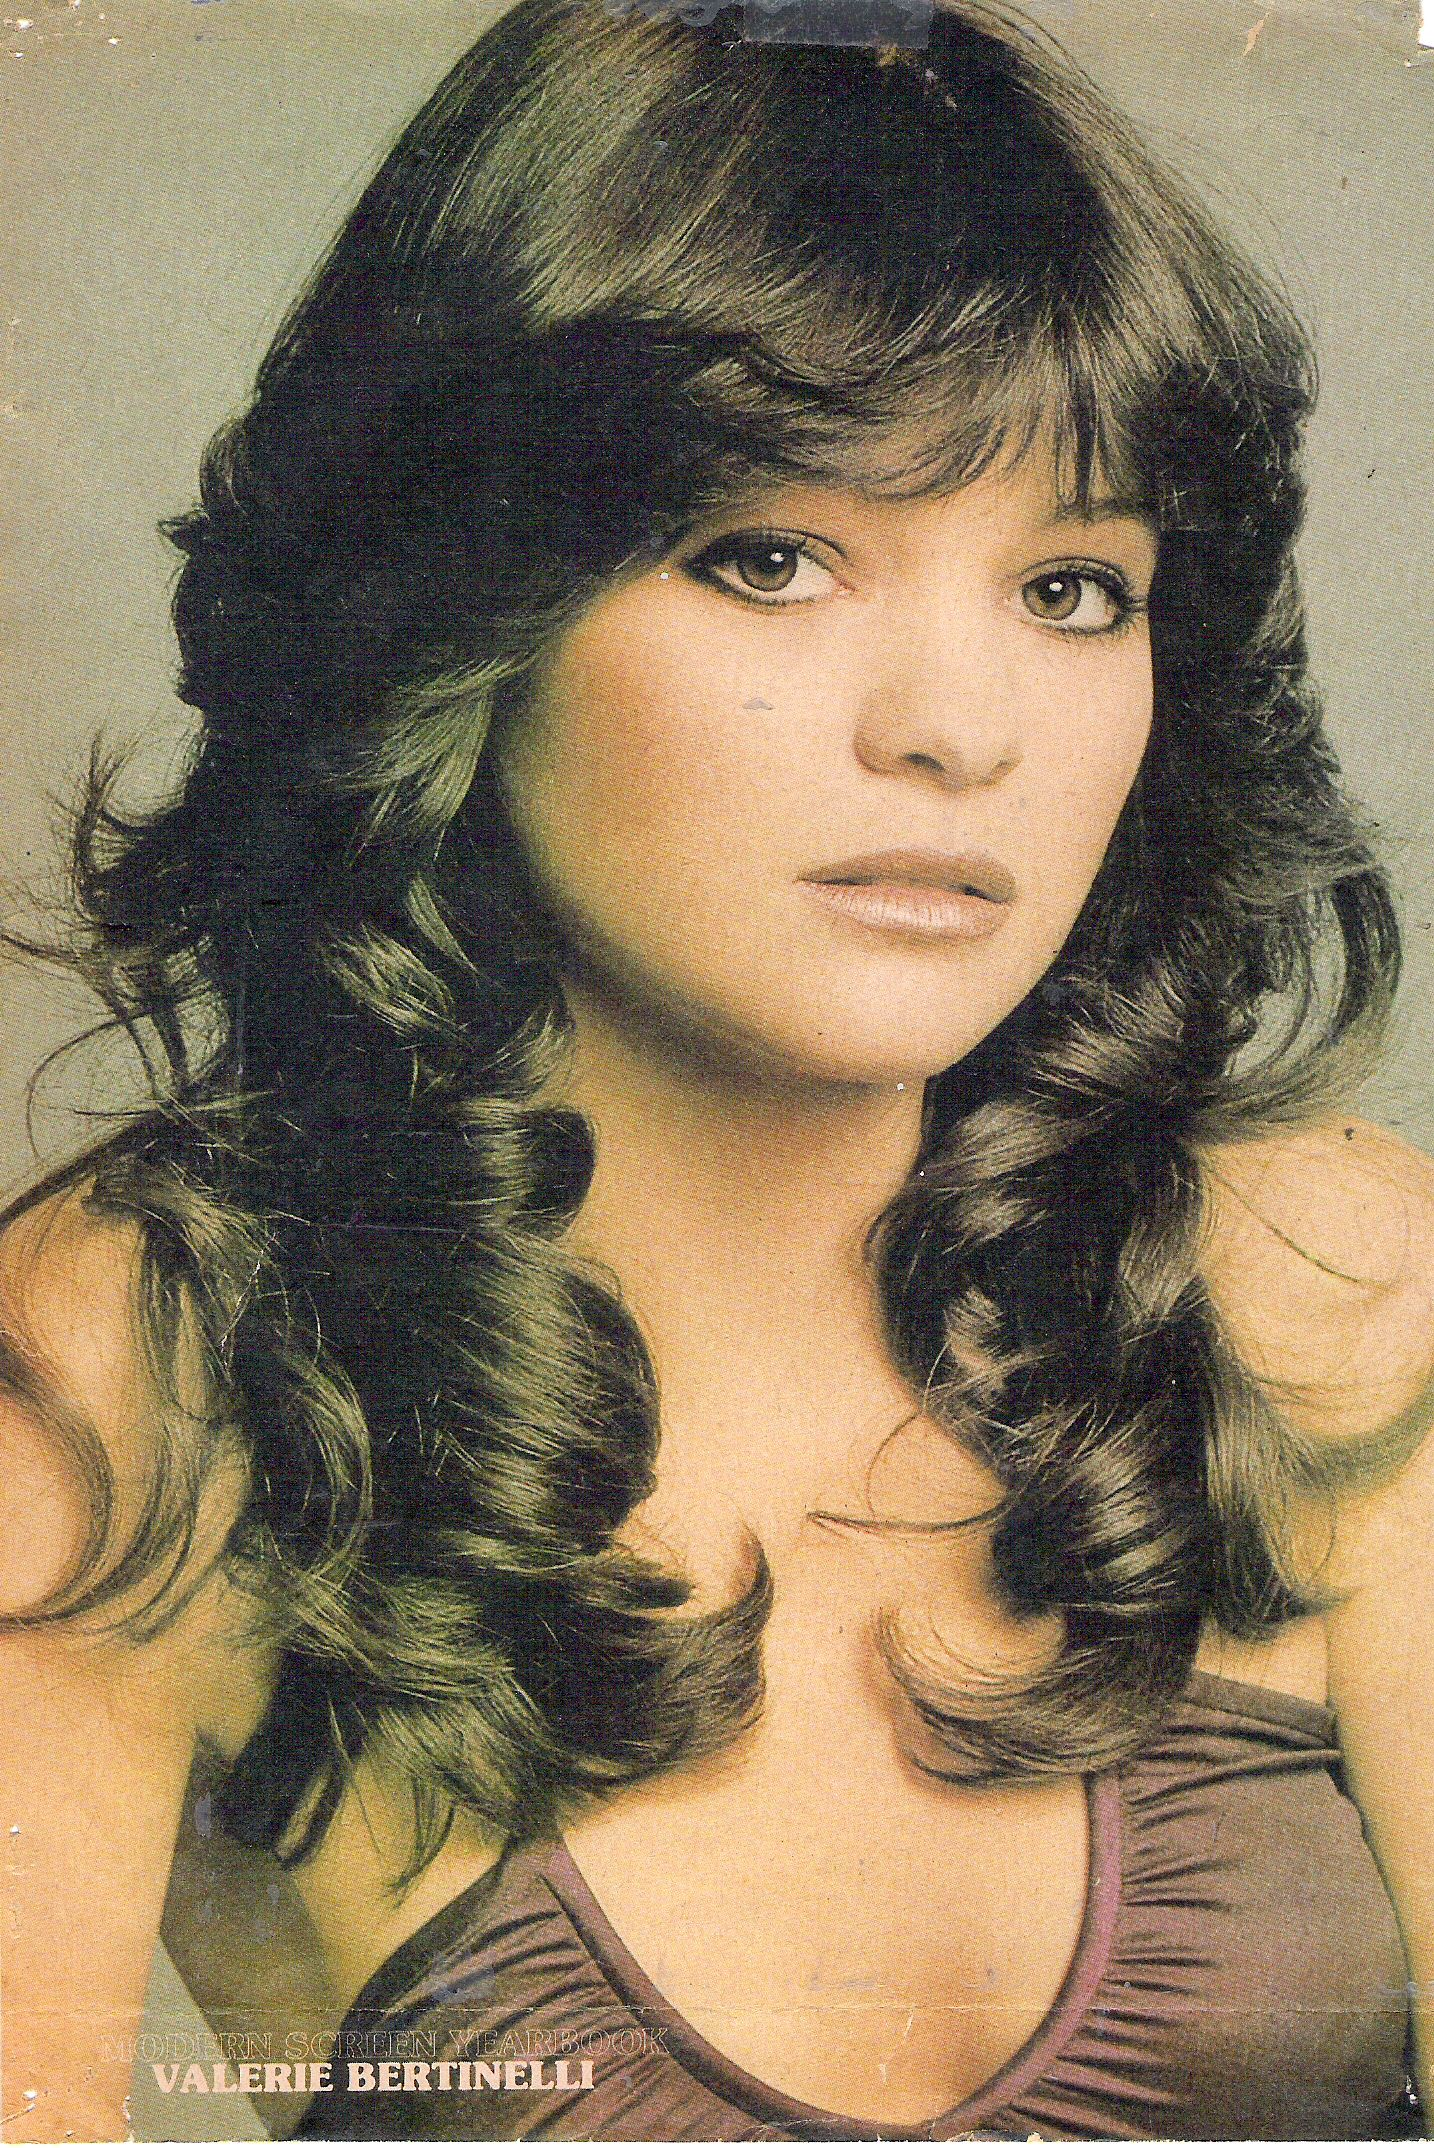 i had this valerie bertinelli poster as a kid. may still